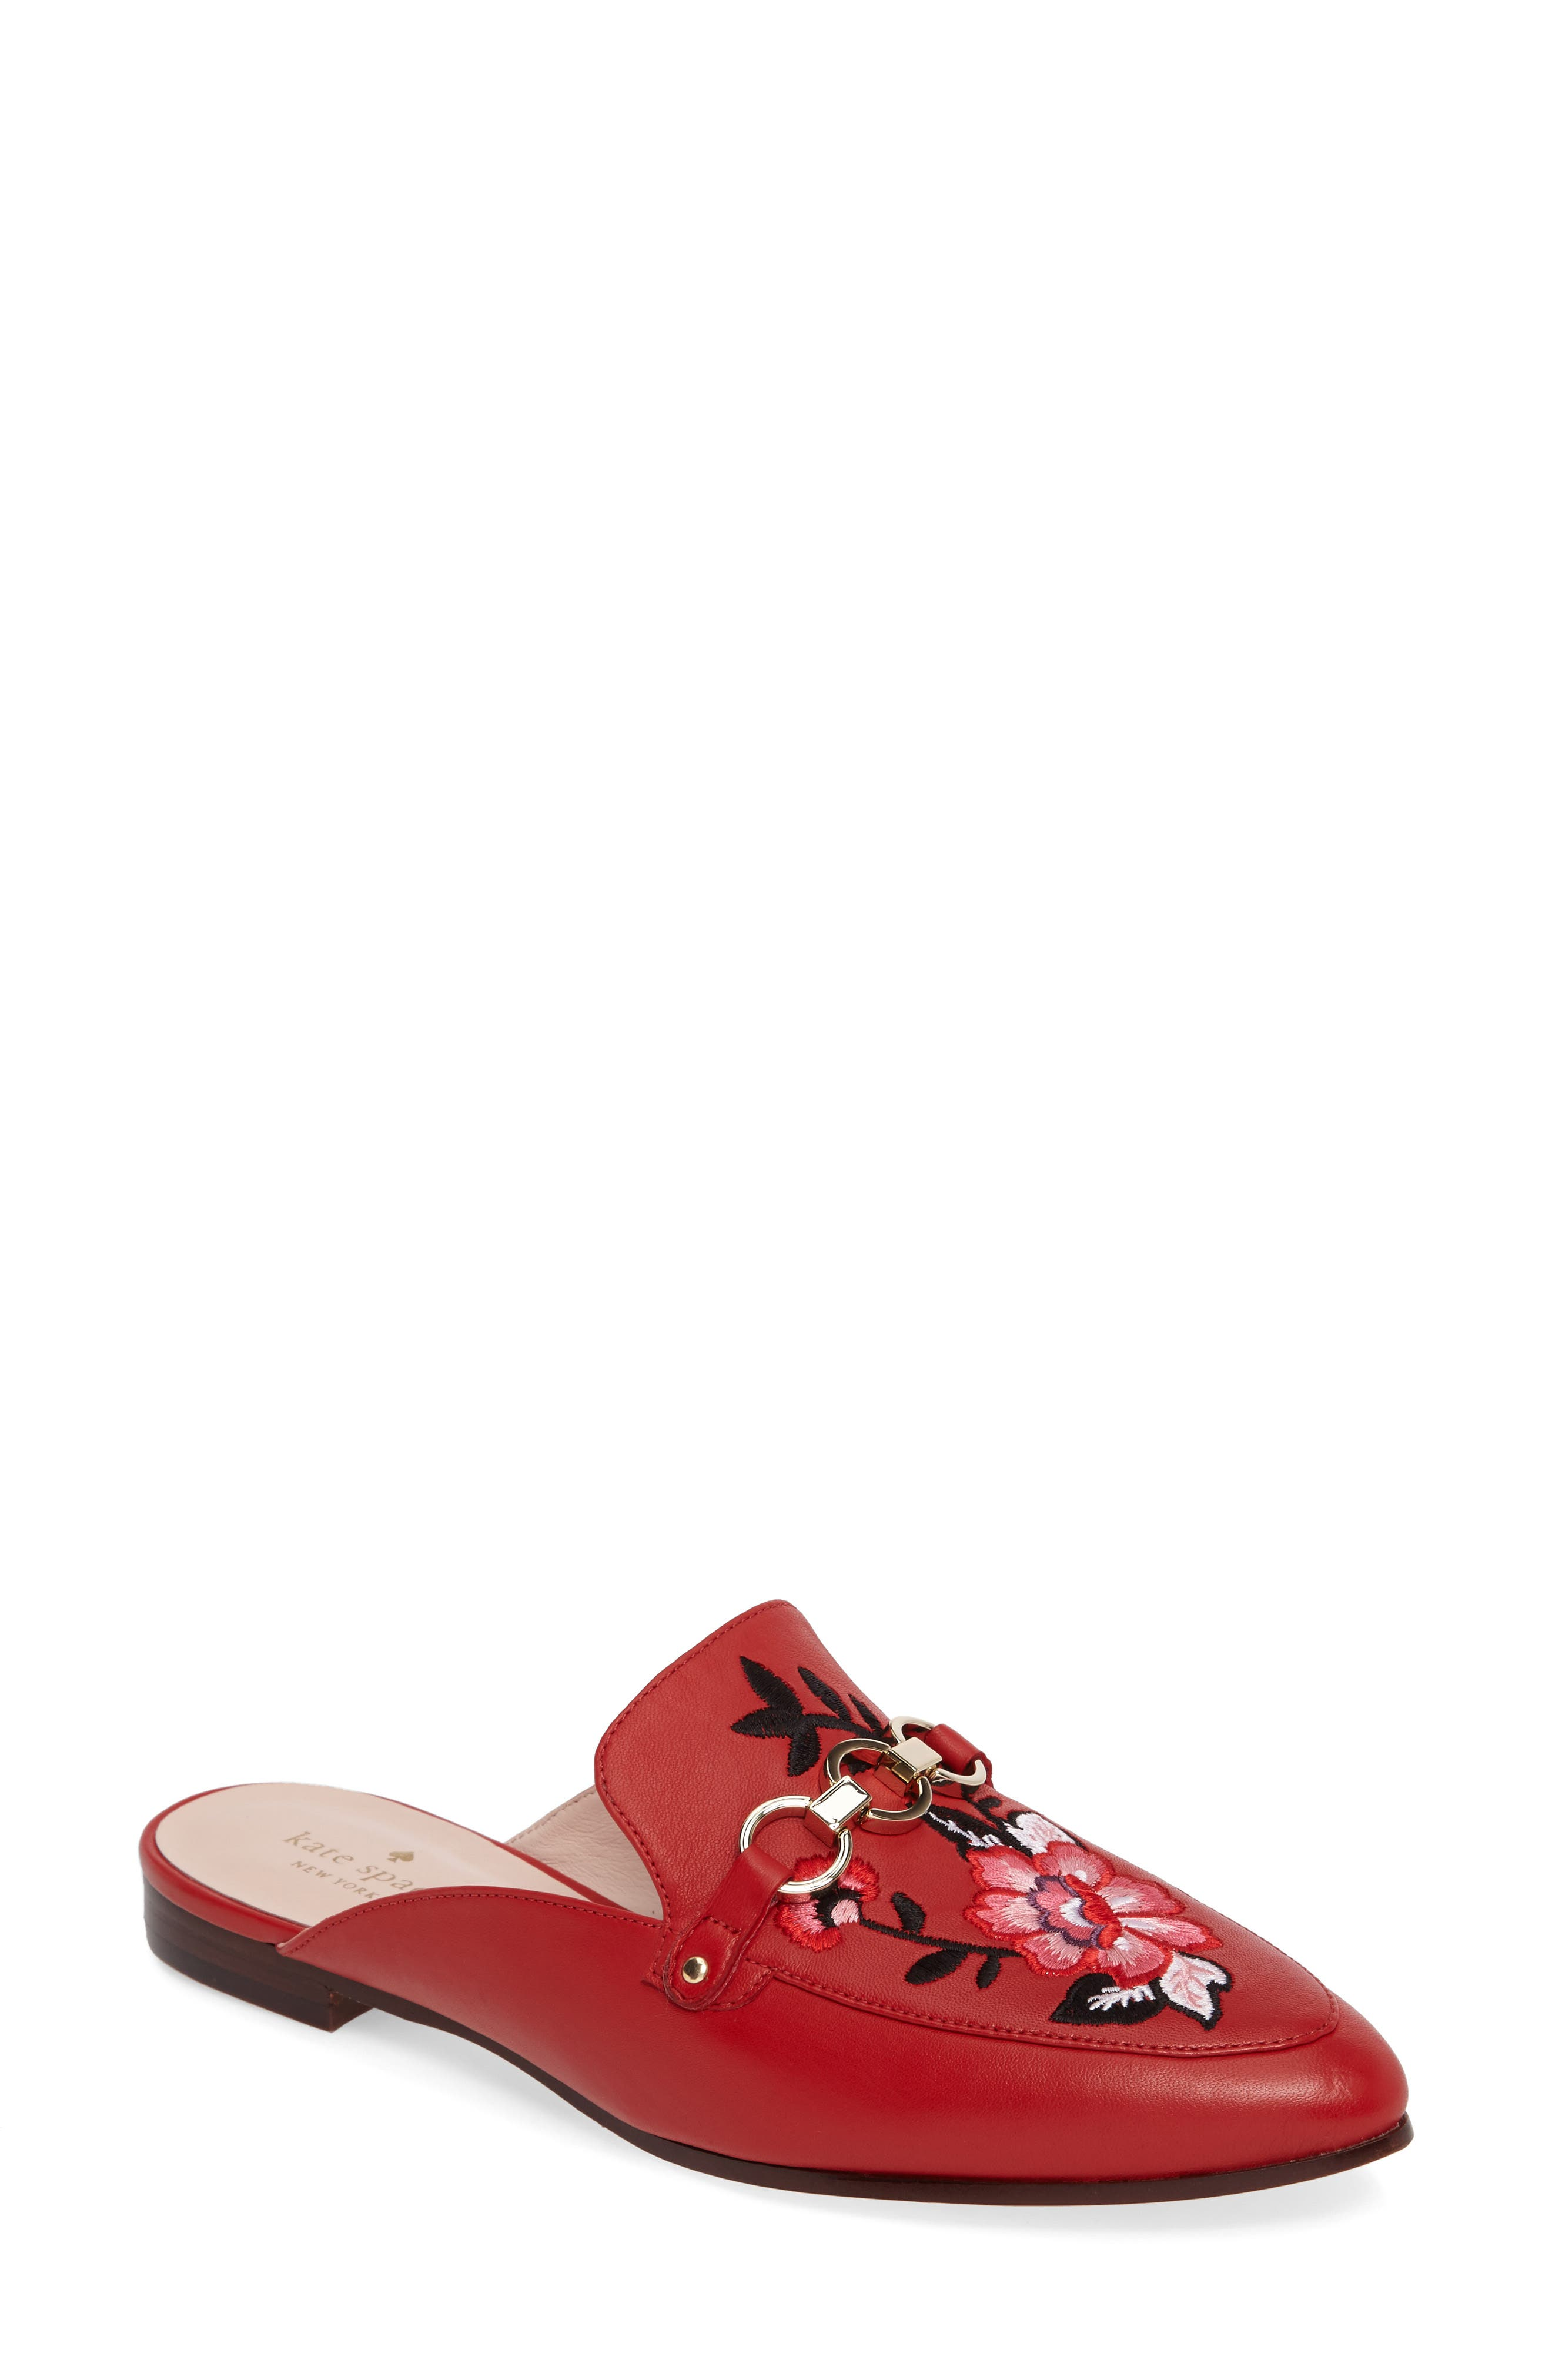 canyon embroidered loafer mule,                         Main,                         color, Maraschino Red Nappa